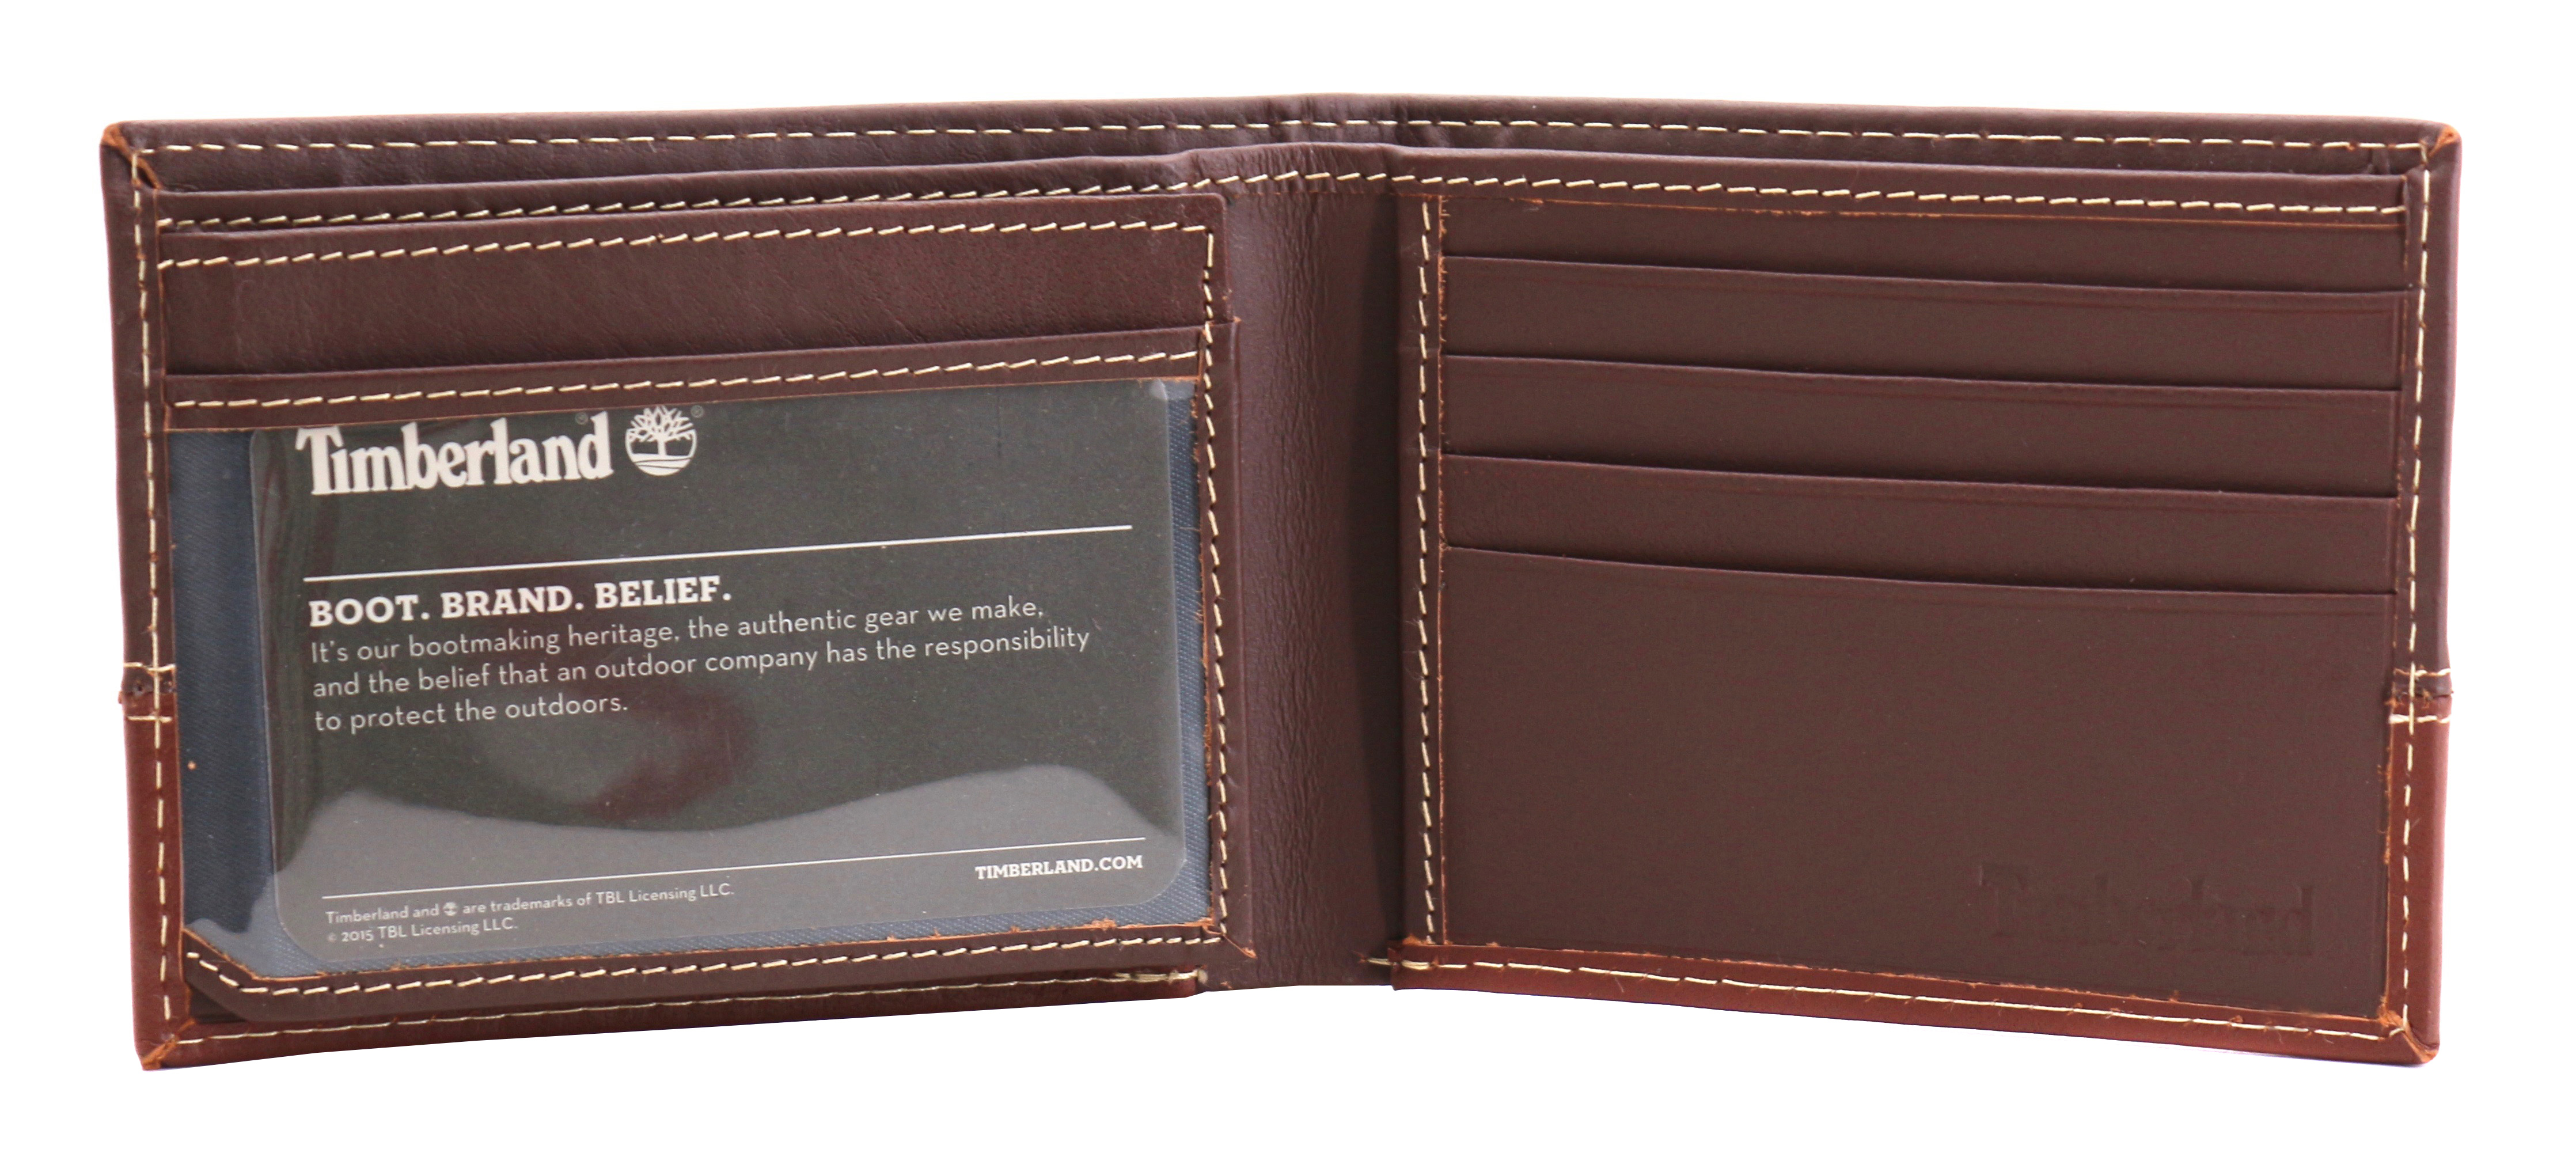 Timberland-Men-039-s-Genuine-Two-Tone-Leather-Credit-Card-Billfold-Commuter-Wallet thumbnail 22